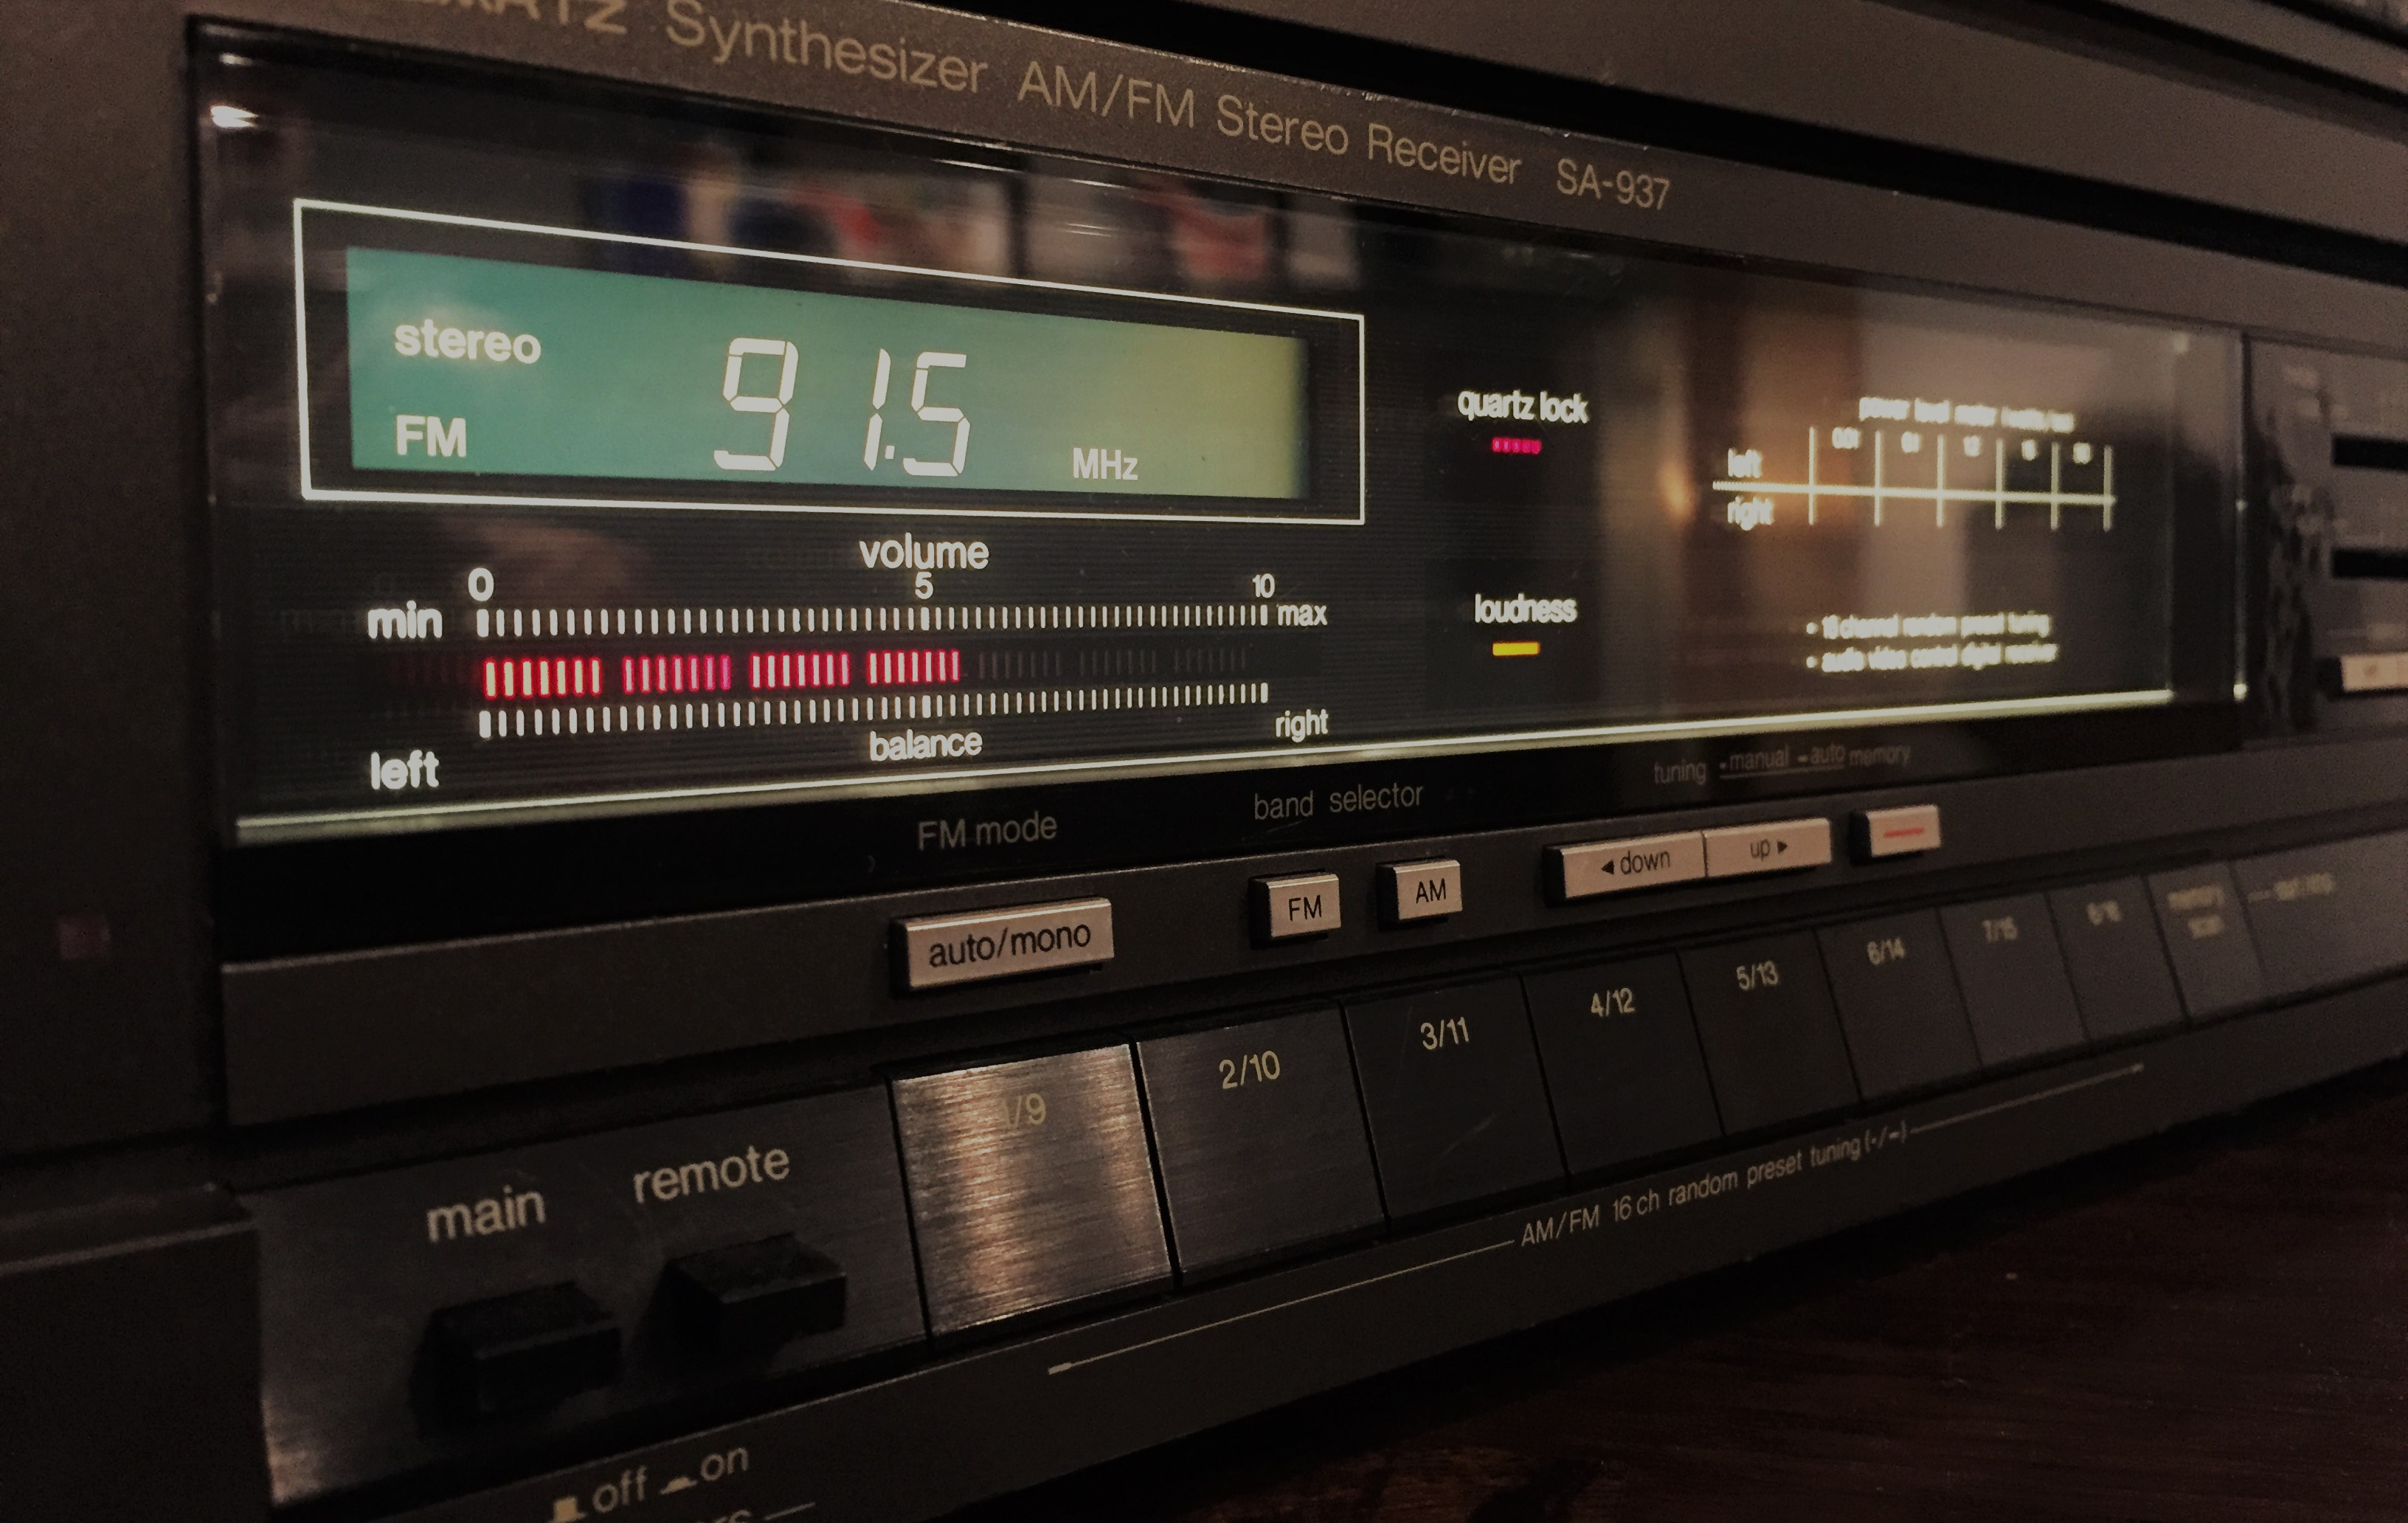 A gently-used AM/FM receiver purchased at a previous Audio-Reader Facebook Live audio sale! (Photo by J. Schafer)